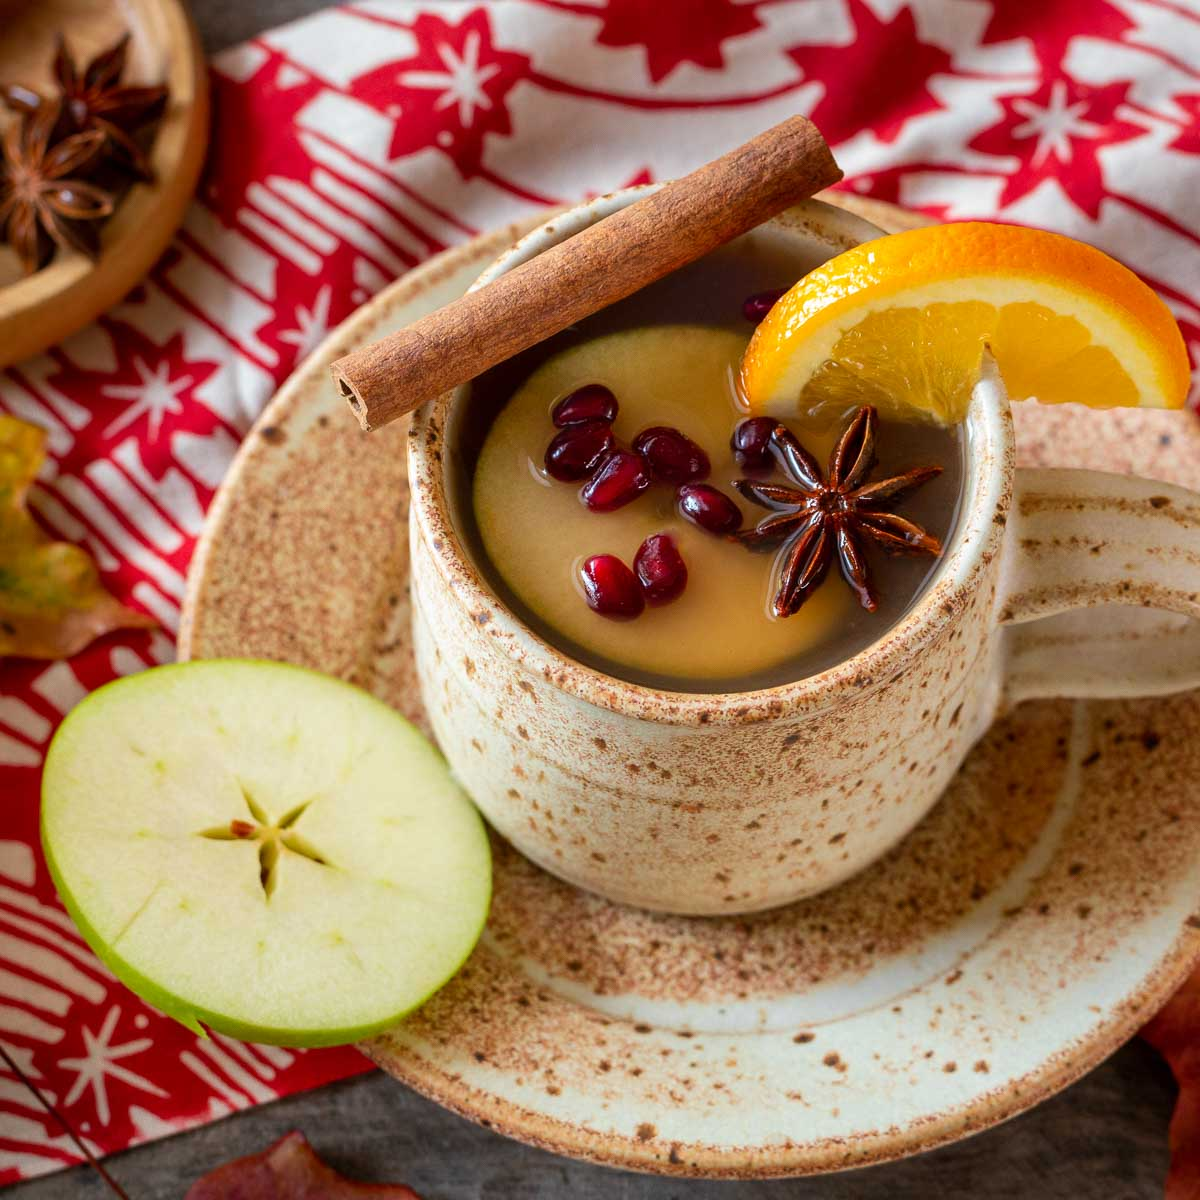 Homemade apple cider in a pottery cup garnished with a cinnamon twill, star anise, orange and pomegranate seeds.s.